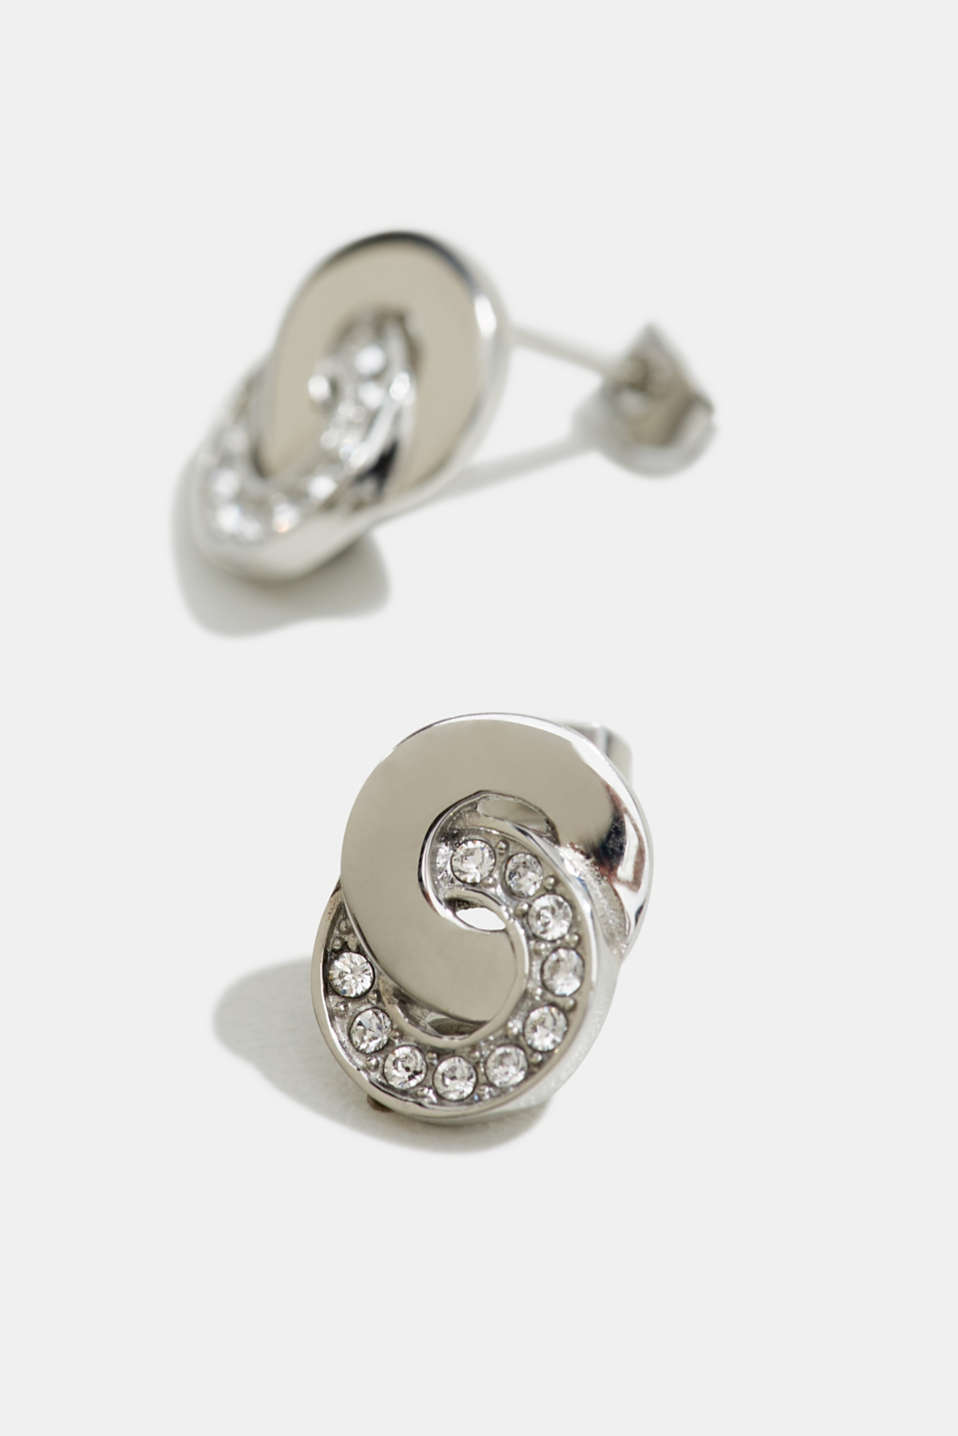 Stainless steel stud earrings with zirconia, LCSILVER, detail image number 1